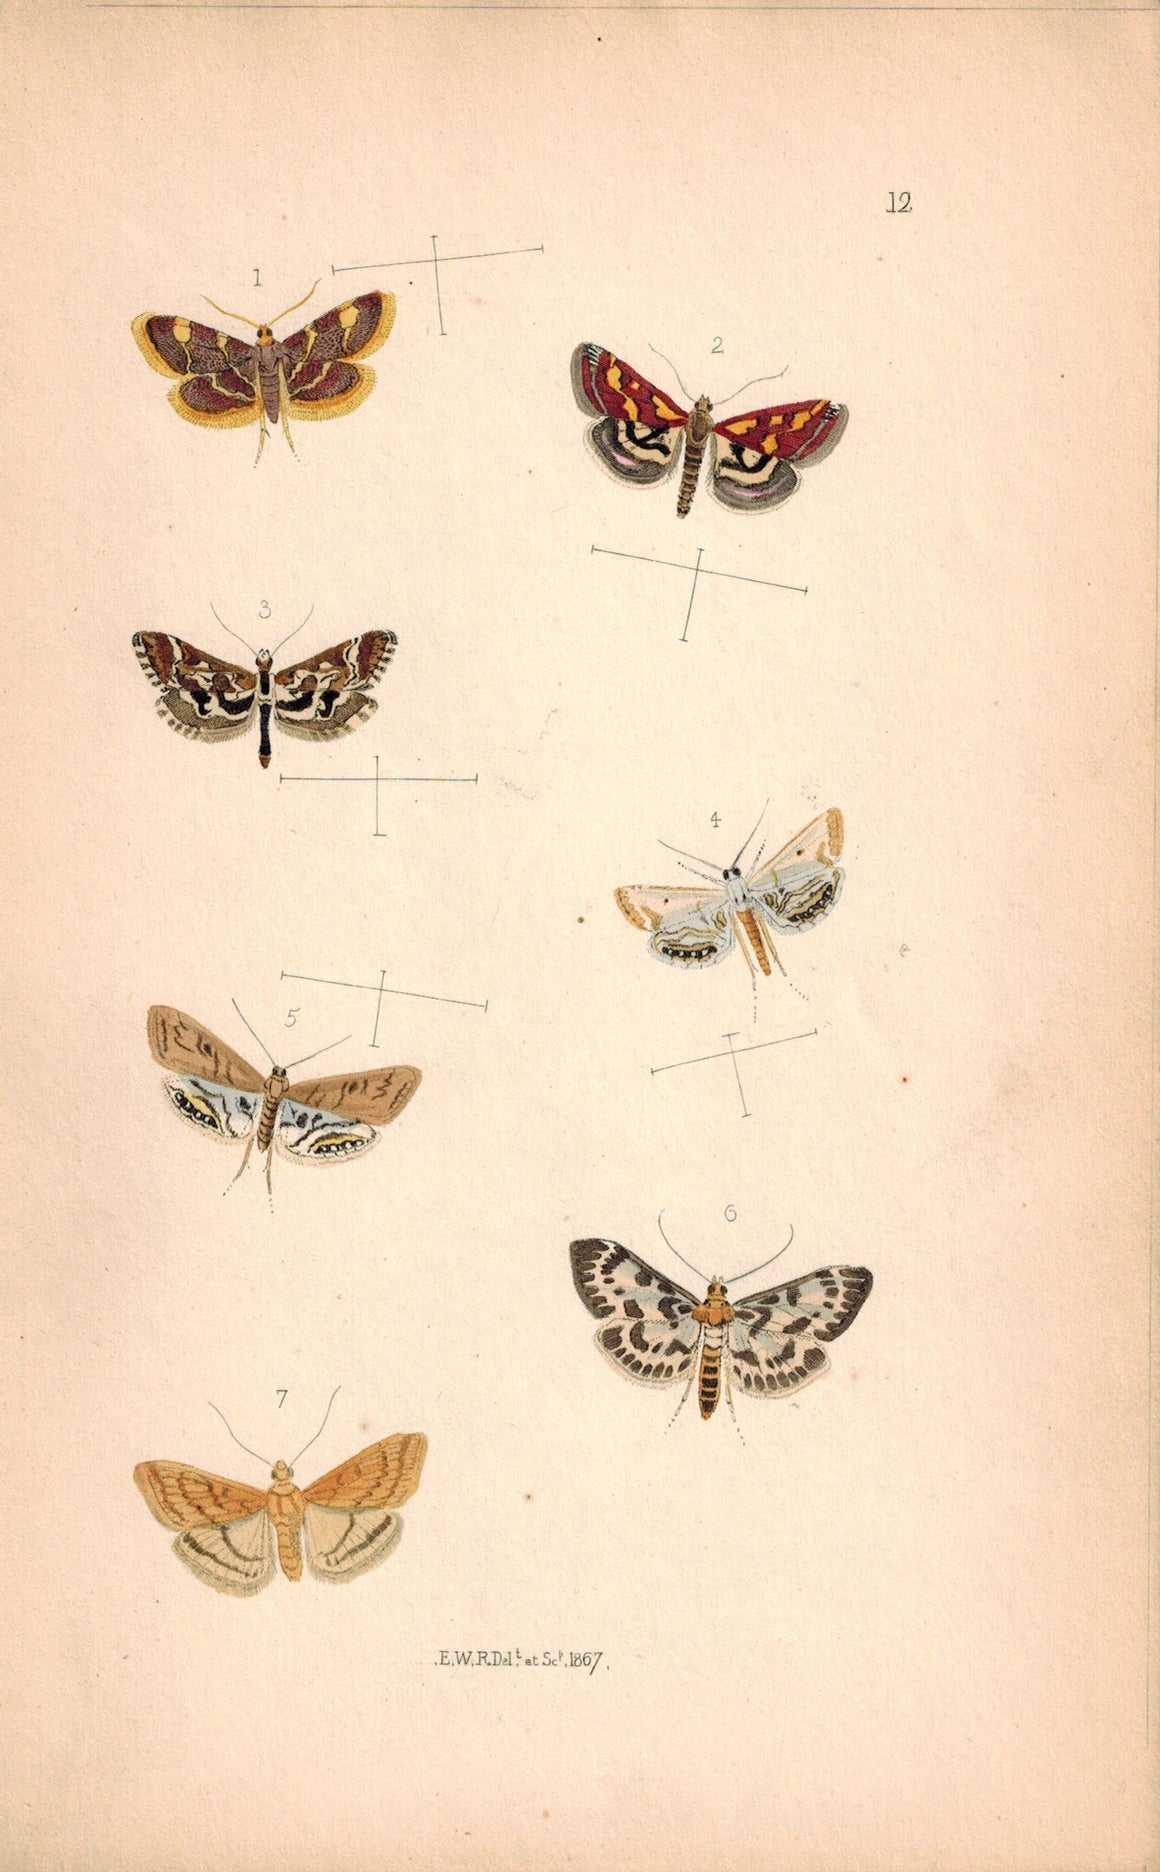 British Butterflies and Moths 1867 Print by Robinson Botys Urticata